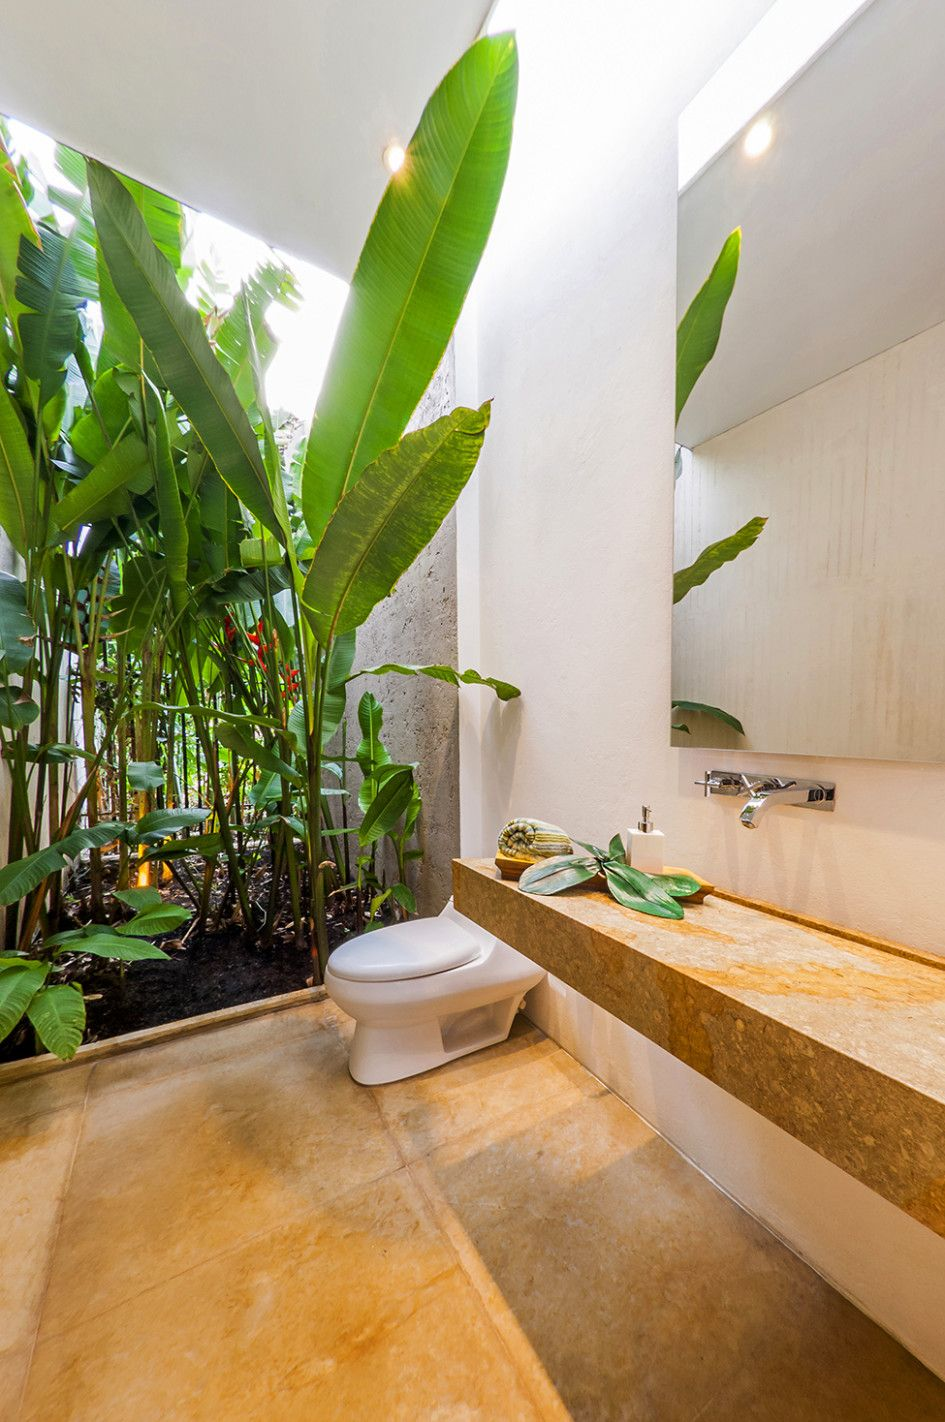 Architecture, Beautify The Room In The Home Garden Dihiasai With Various  Ornamental Plants Open Space